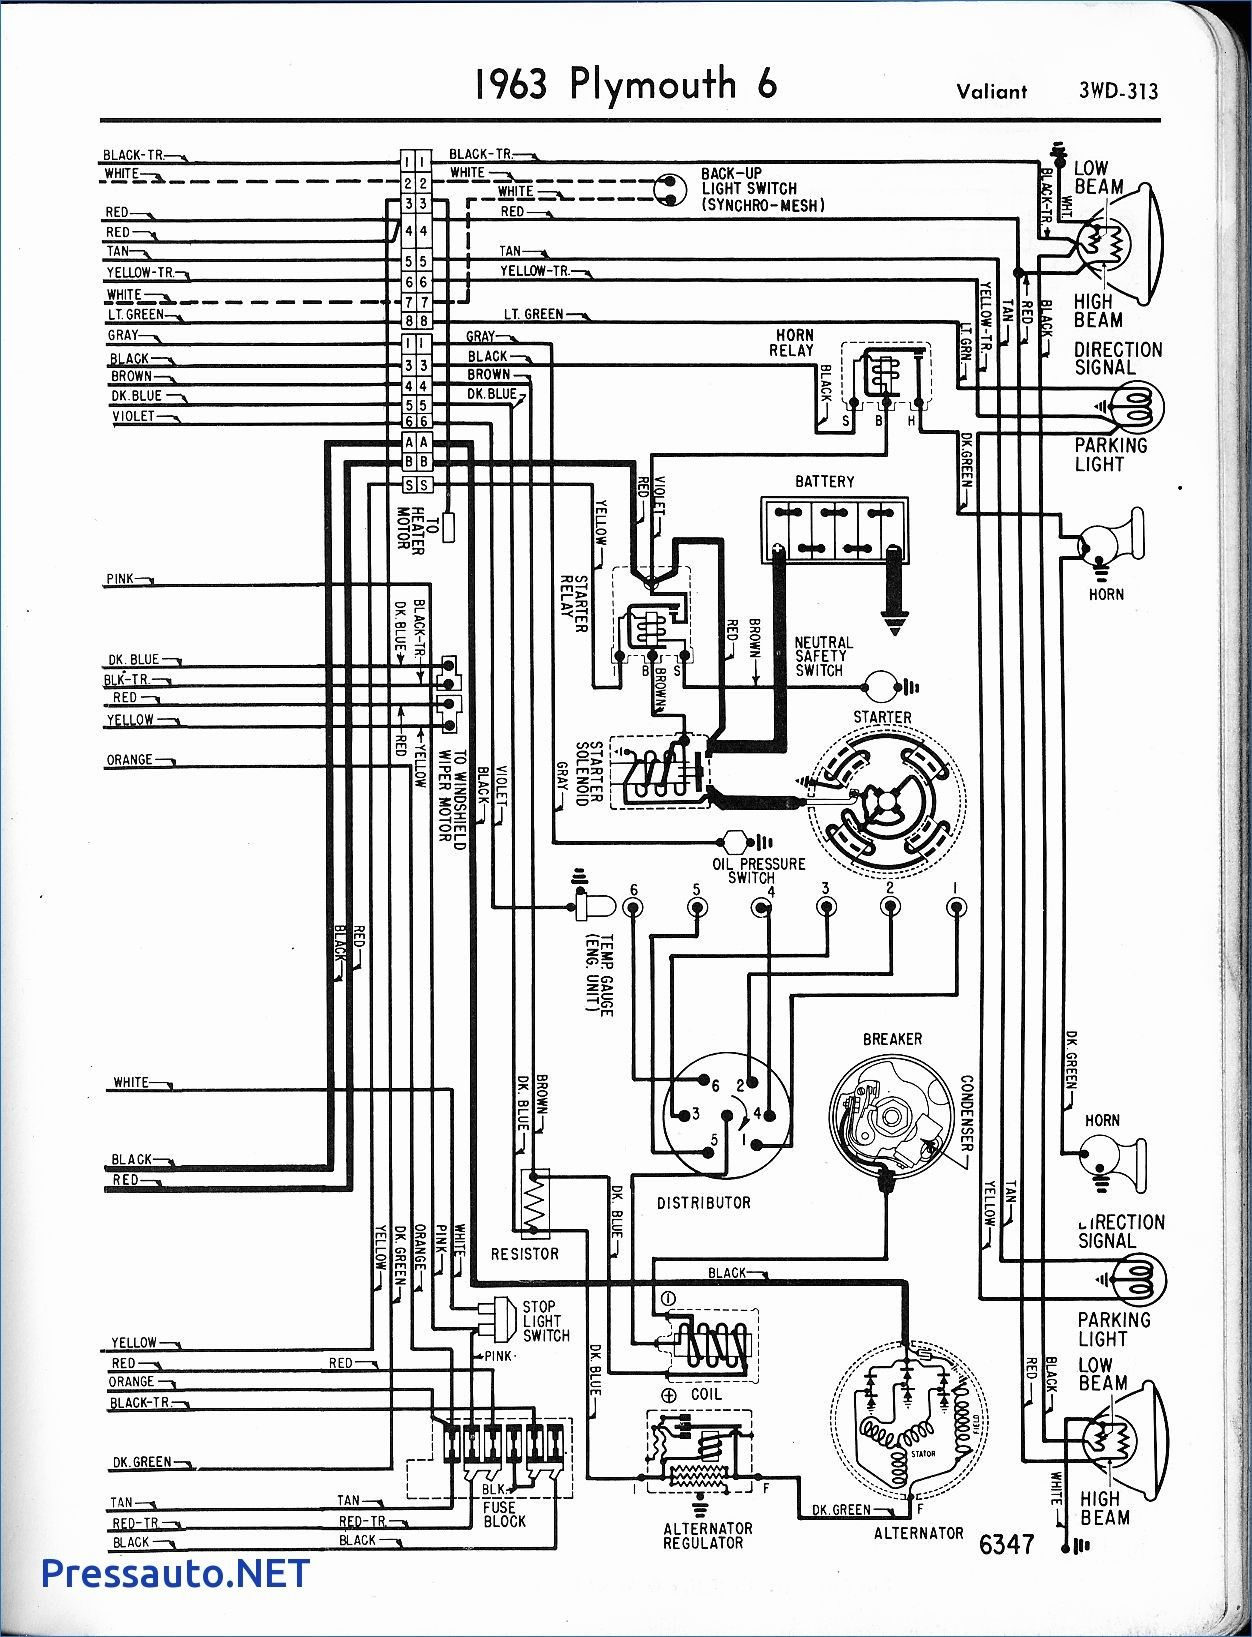 Limit Switch Wiring Schematic Limit Switch Wiring Diagram Motor Com - Honeywell Fan Limit Switch Wiring Diagram